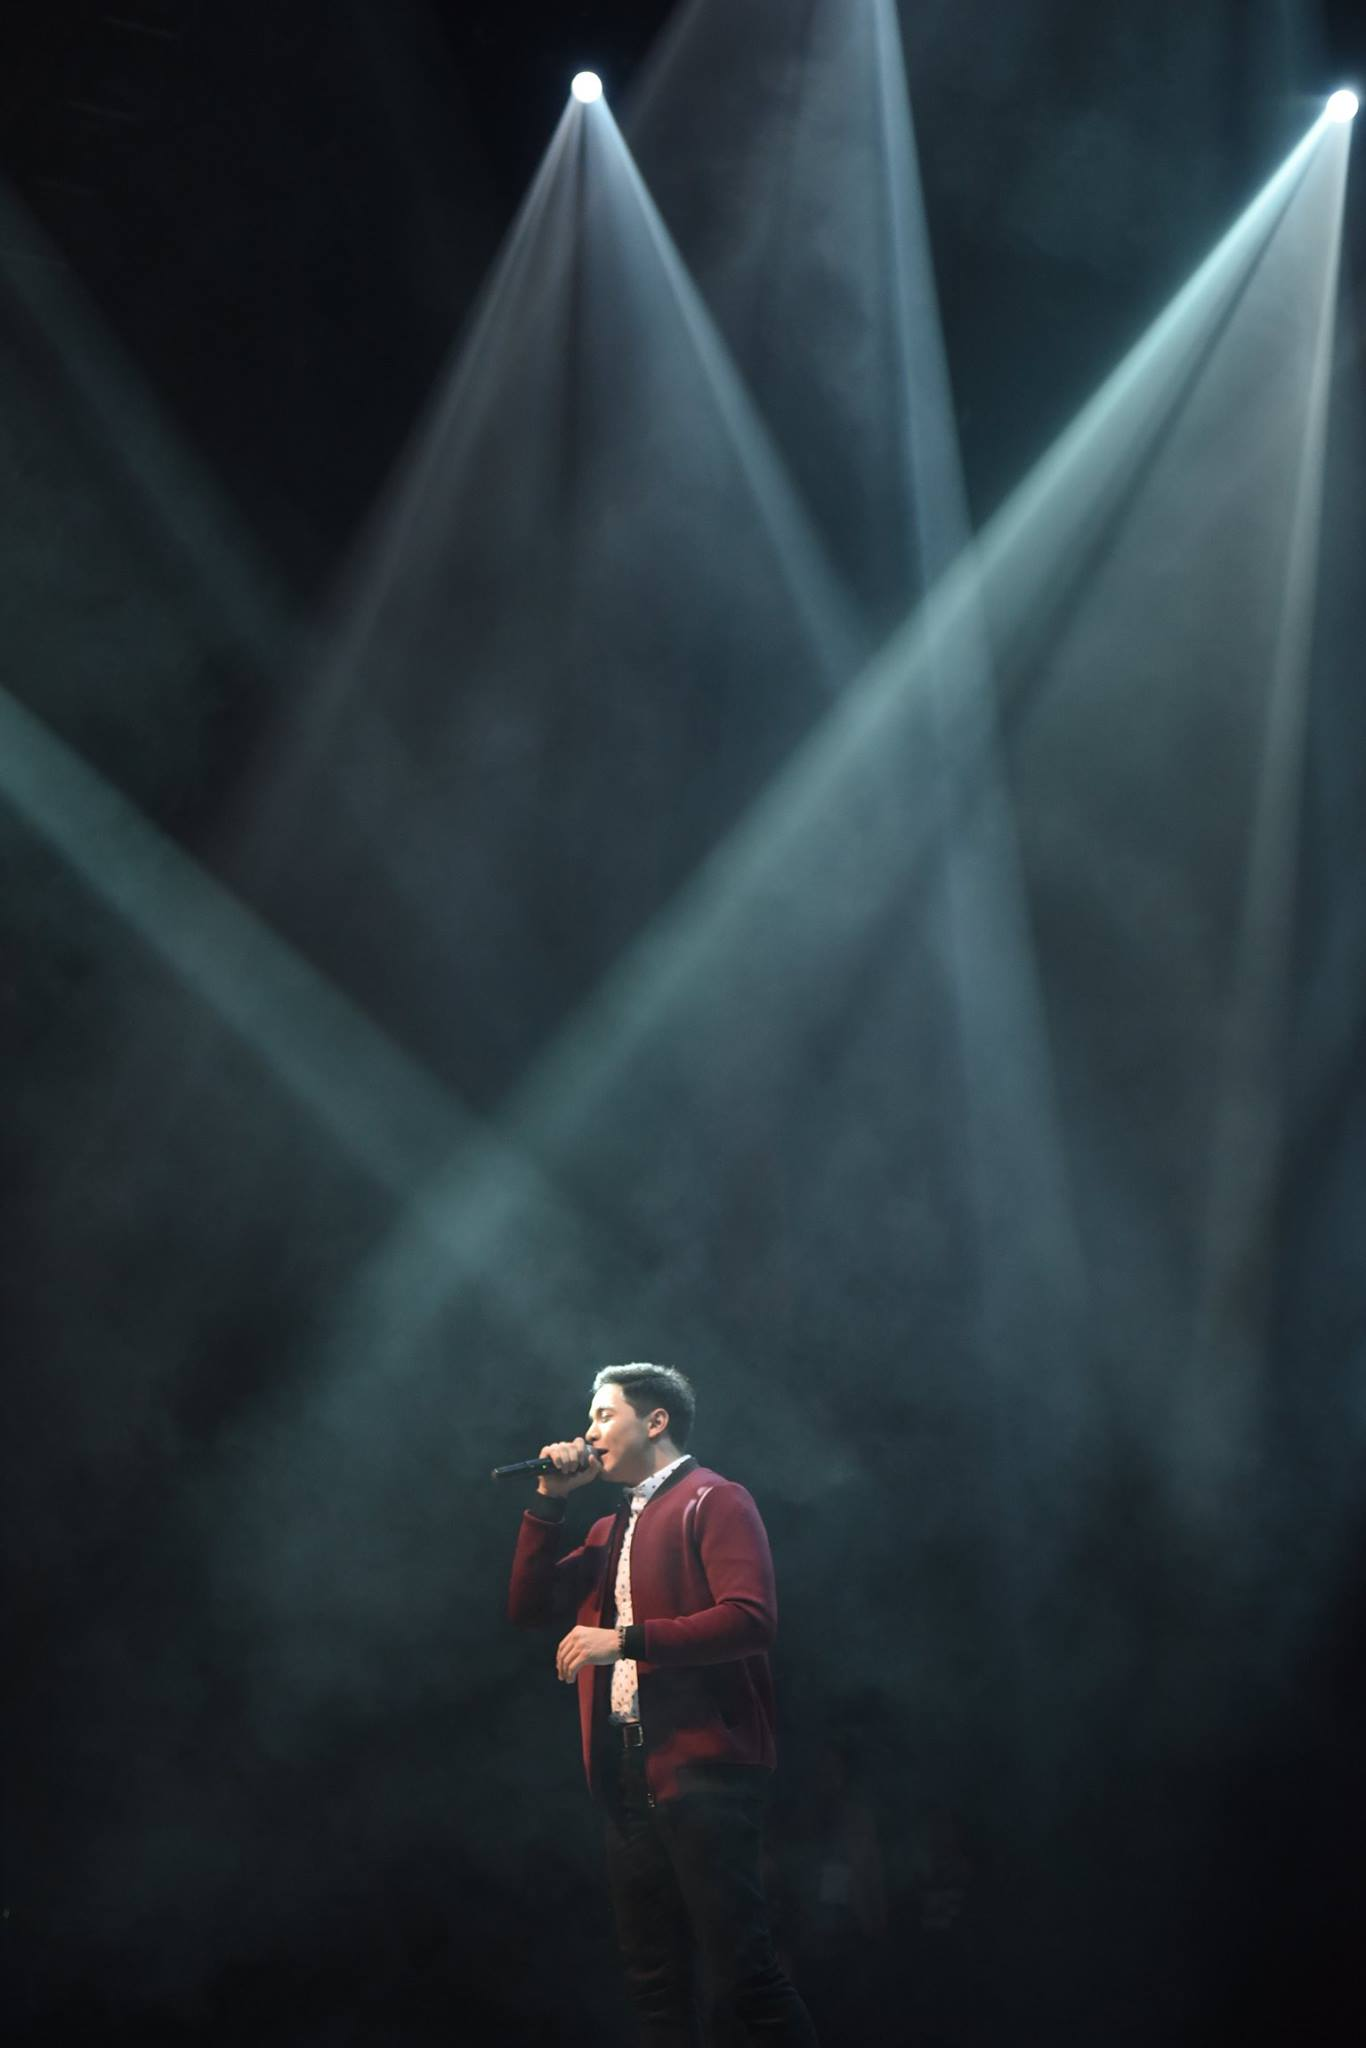 alden richards with lights on stage singing hosting concert in singapore pinoy celebrity hottest